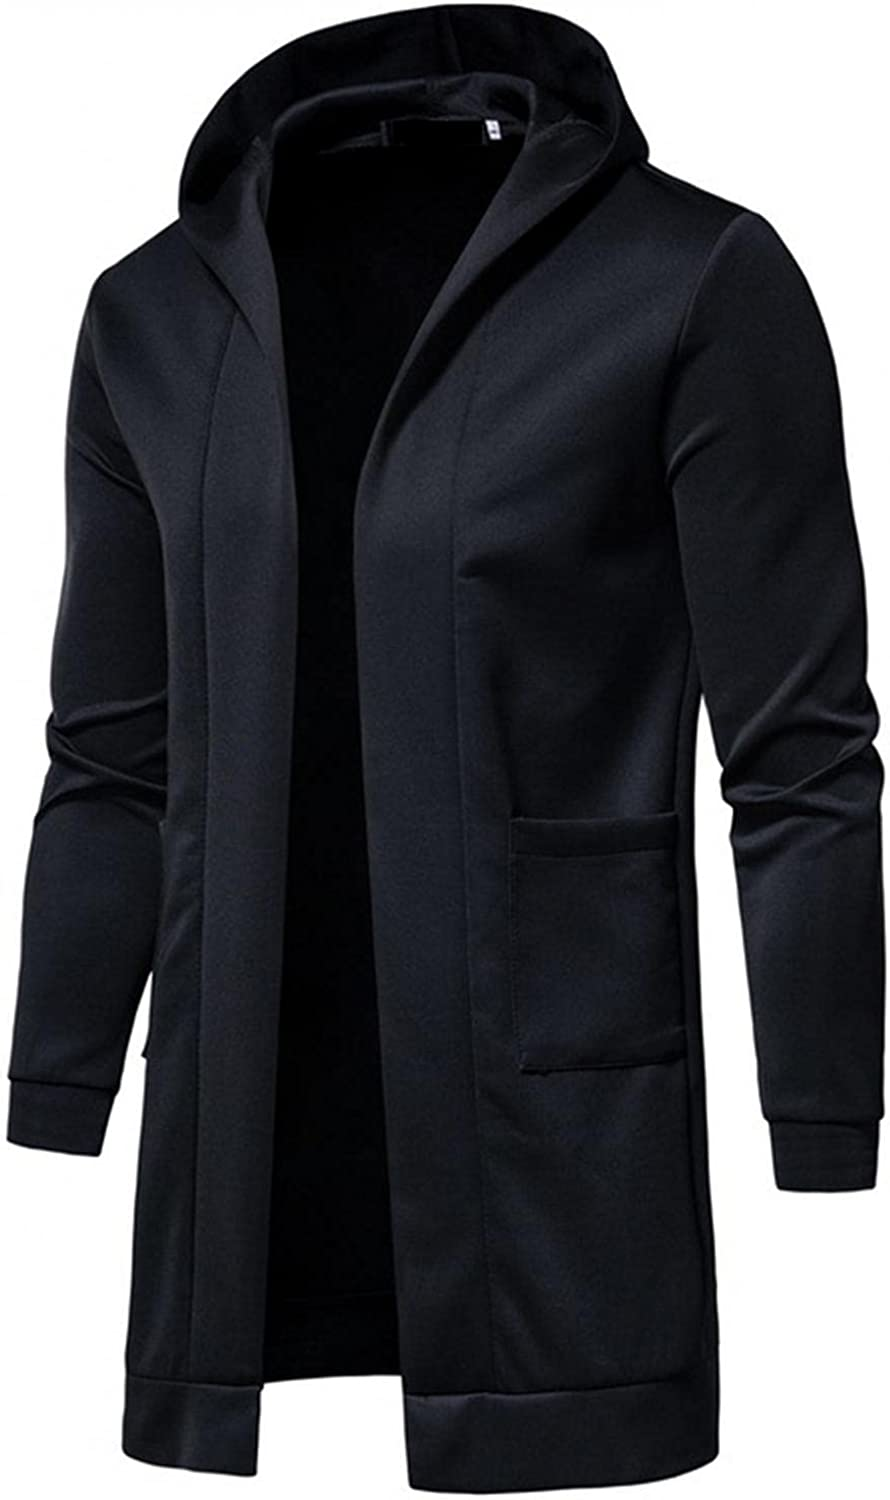 LEIYAN Mens Hooded Trench Coat Casual Long Sleeve Solid Color Slim Fit Windbreaker Autumn Winter Work Coat